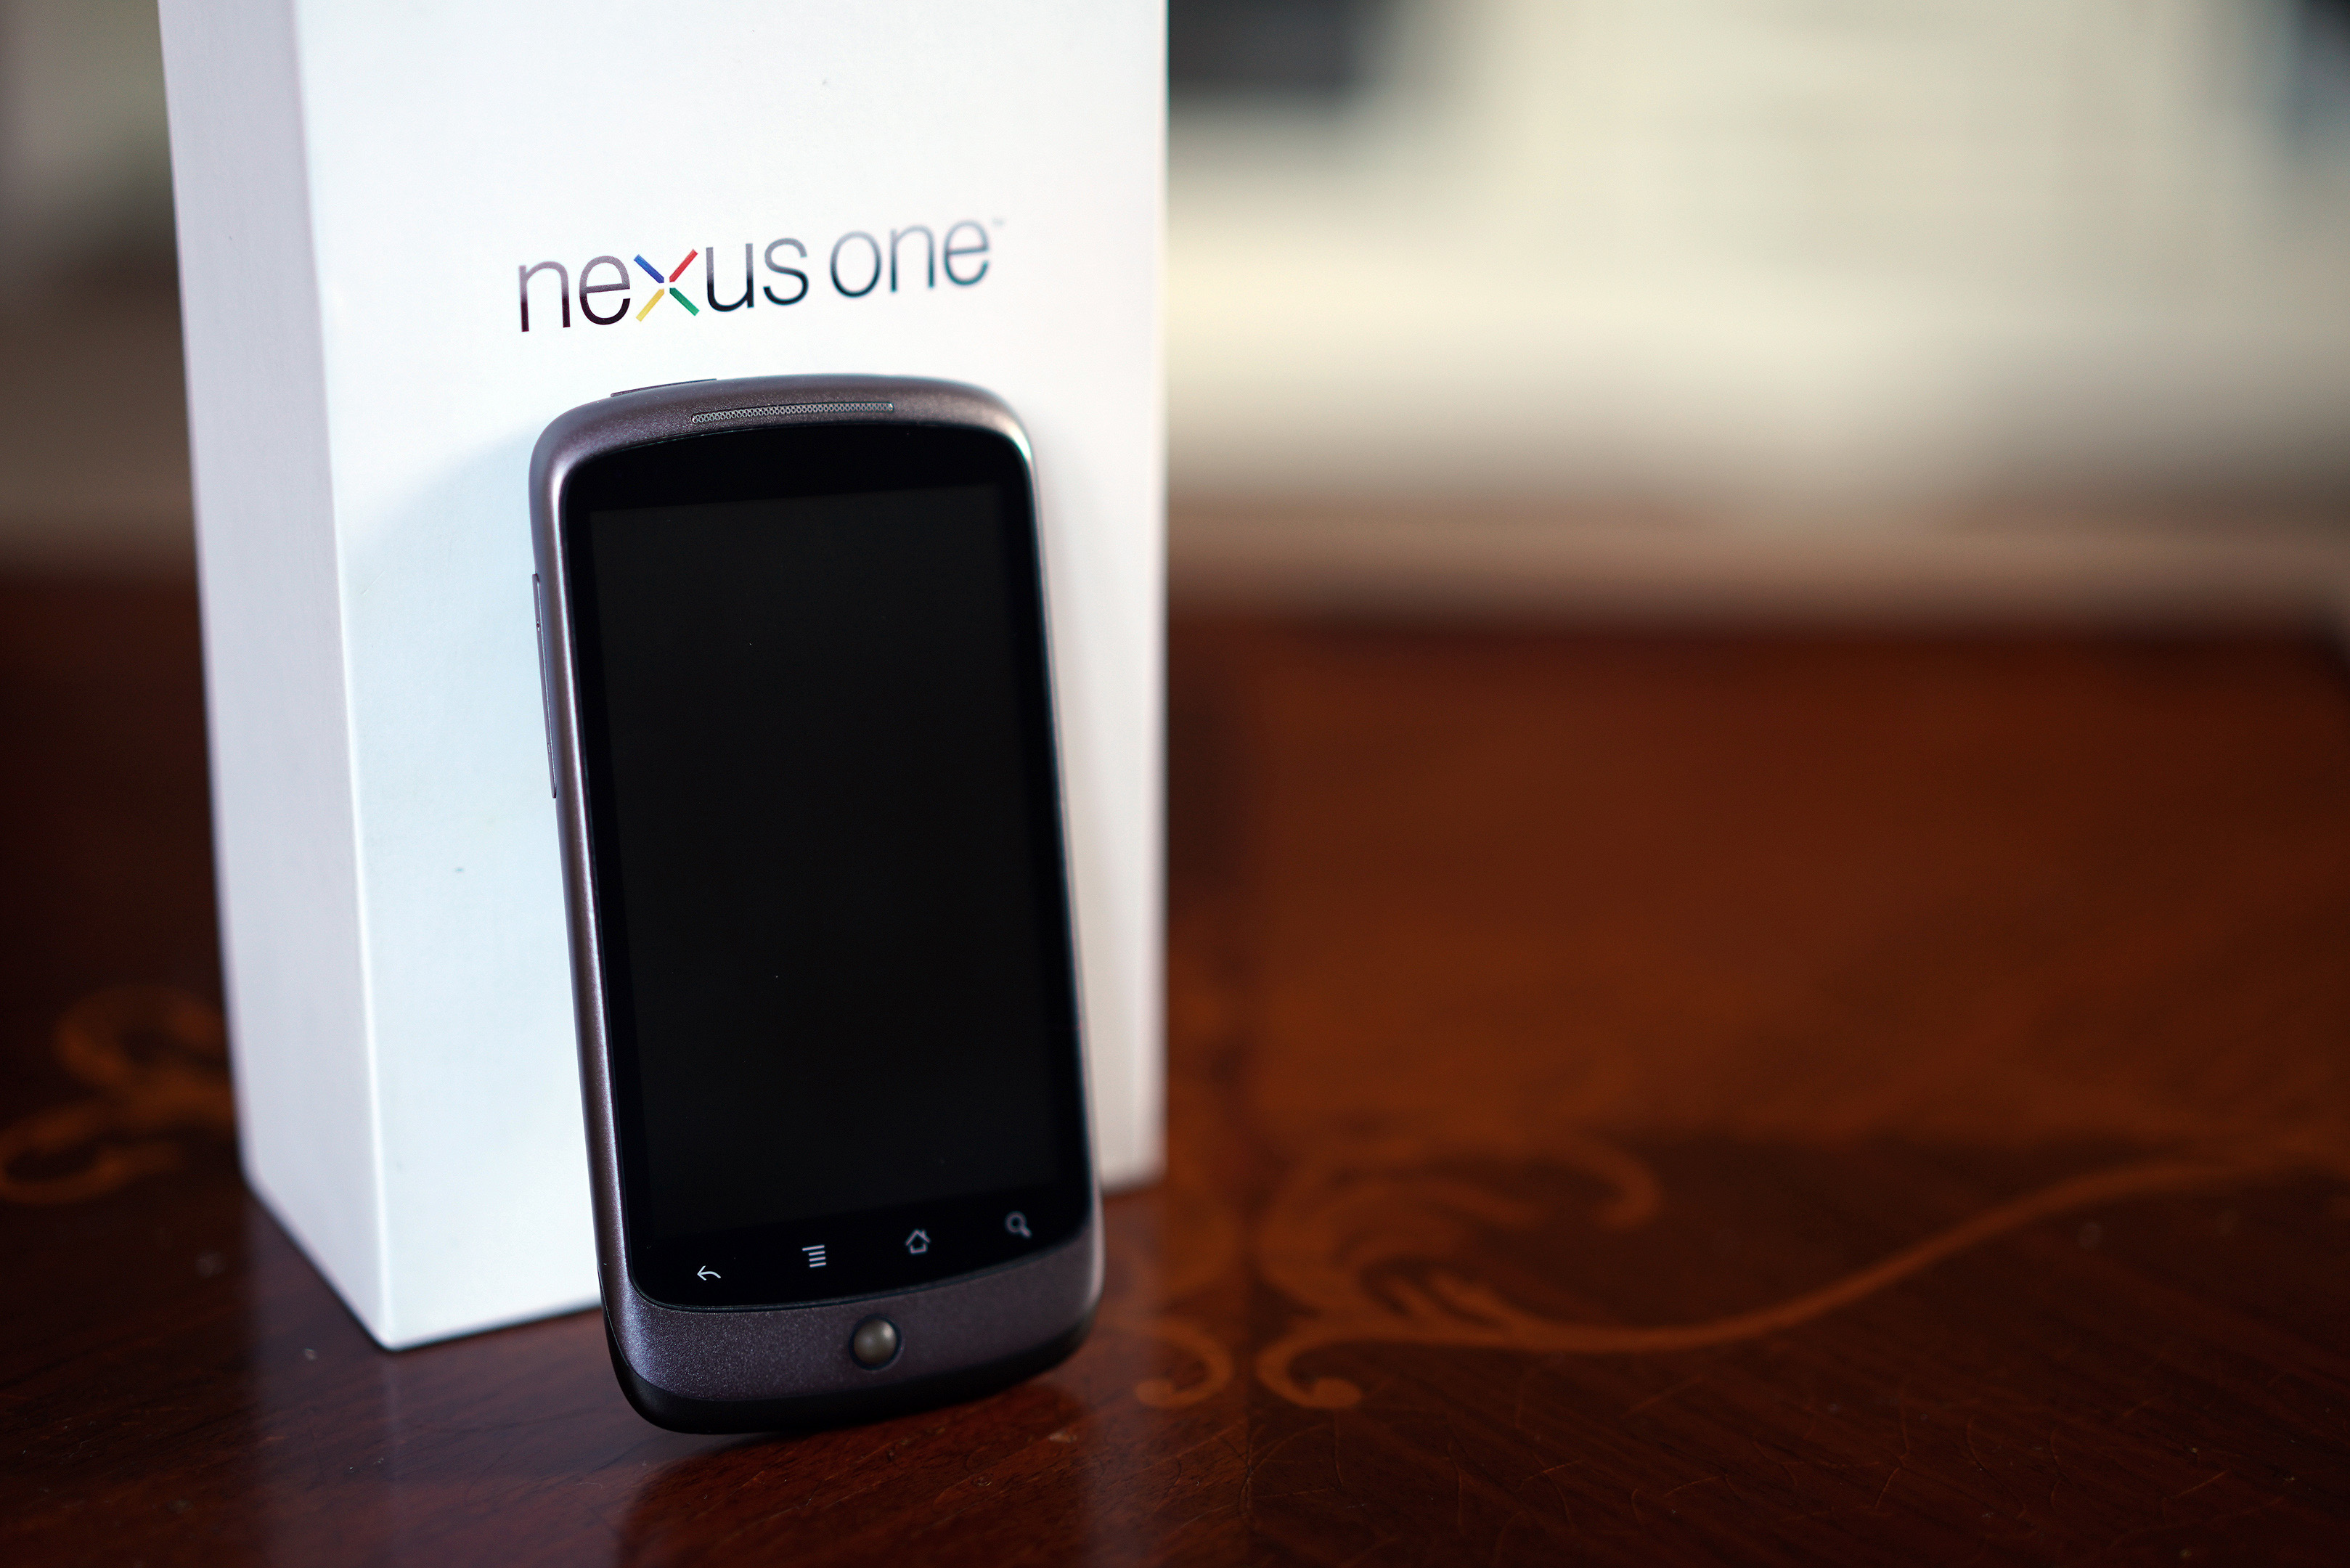 Nexus One — начало легенды | Ретро-гаджеты